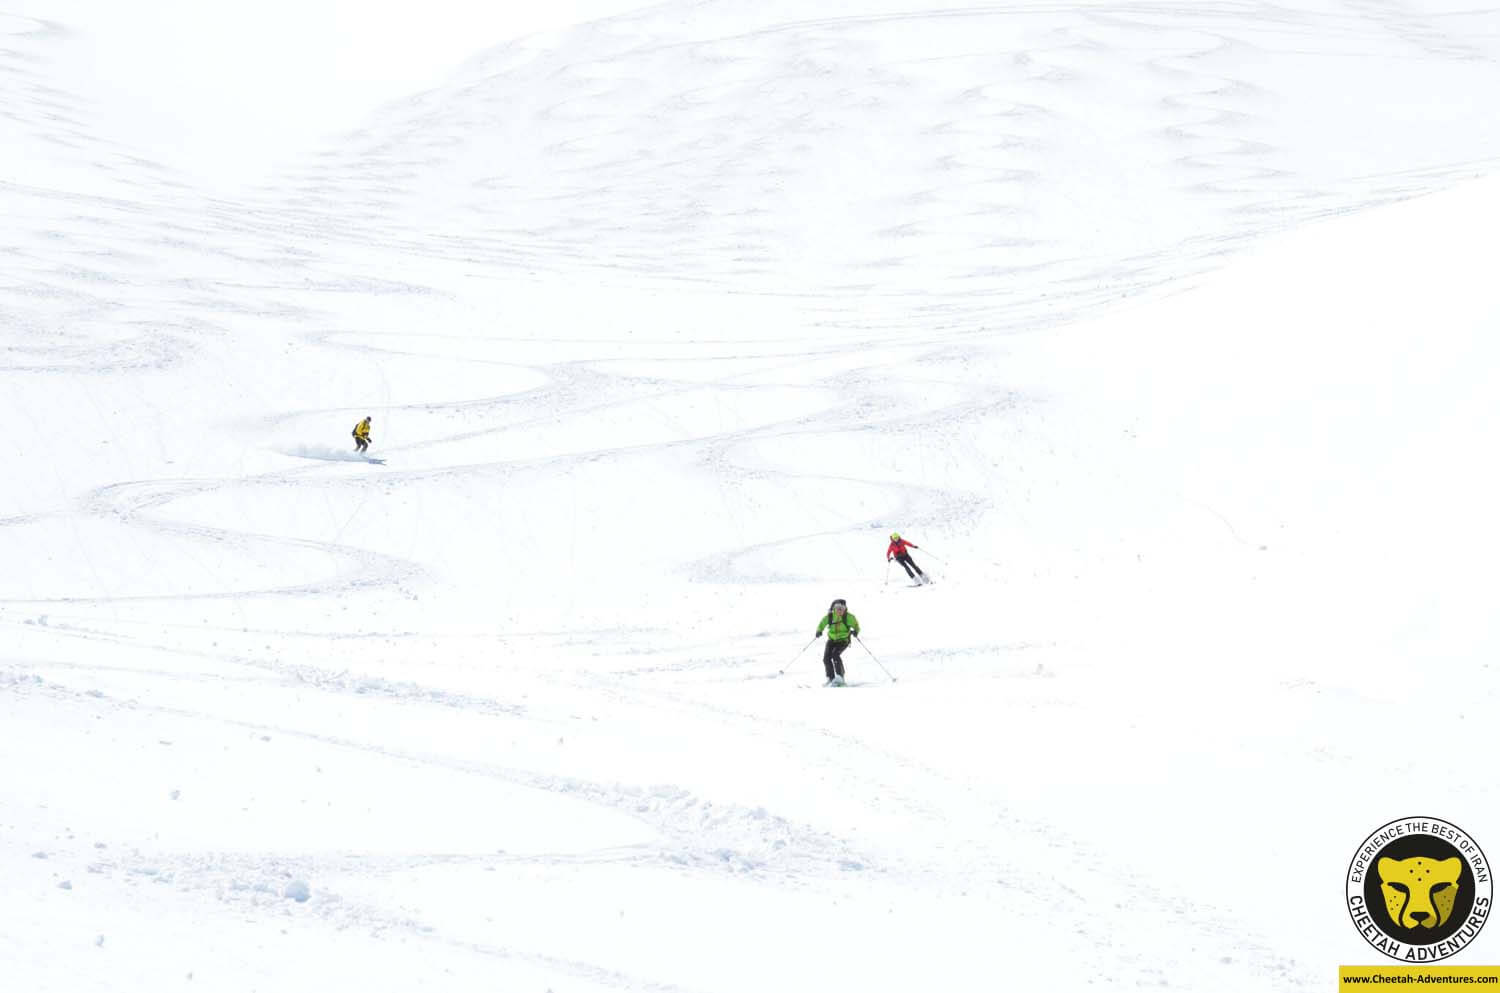 3 Enjoy Skiing on powder snow, Doberar Mountain Range, Ski Touring